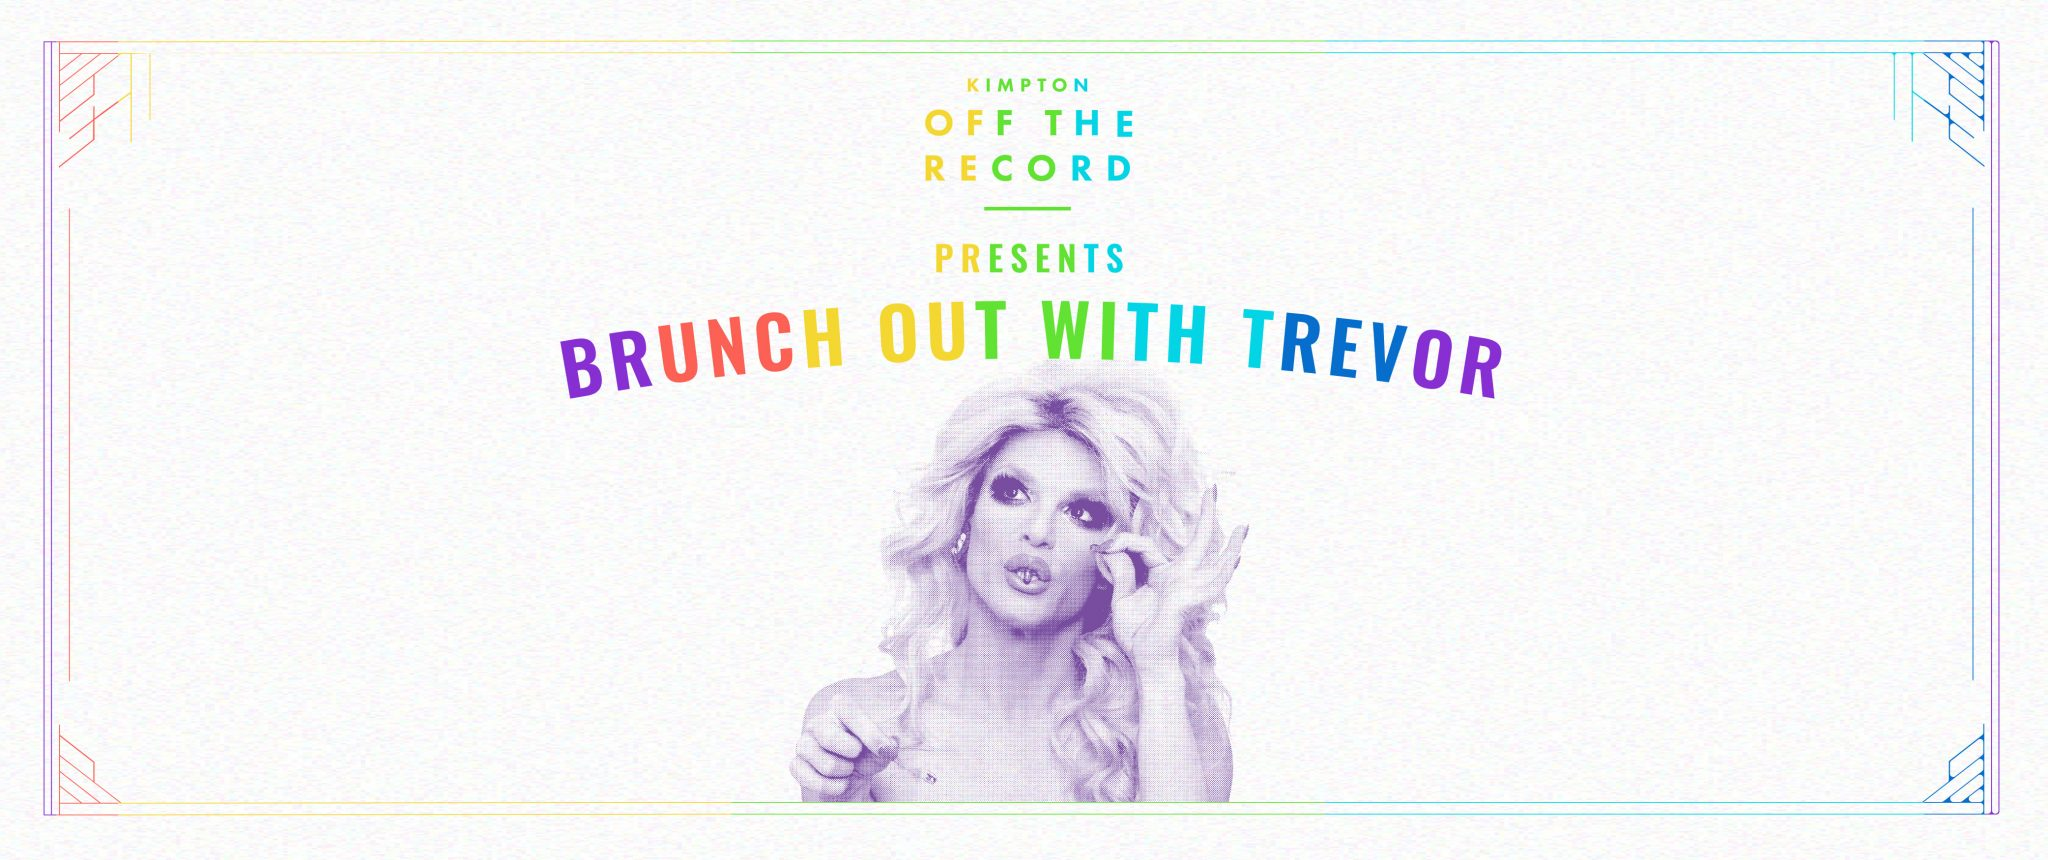 brunch out with trevor